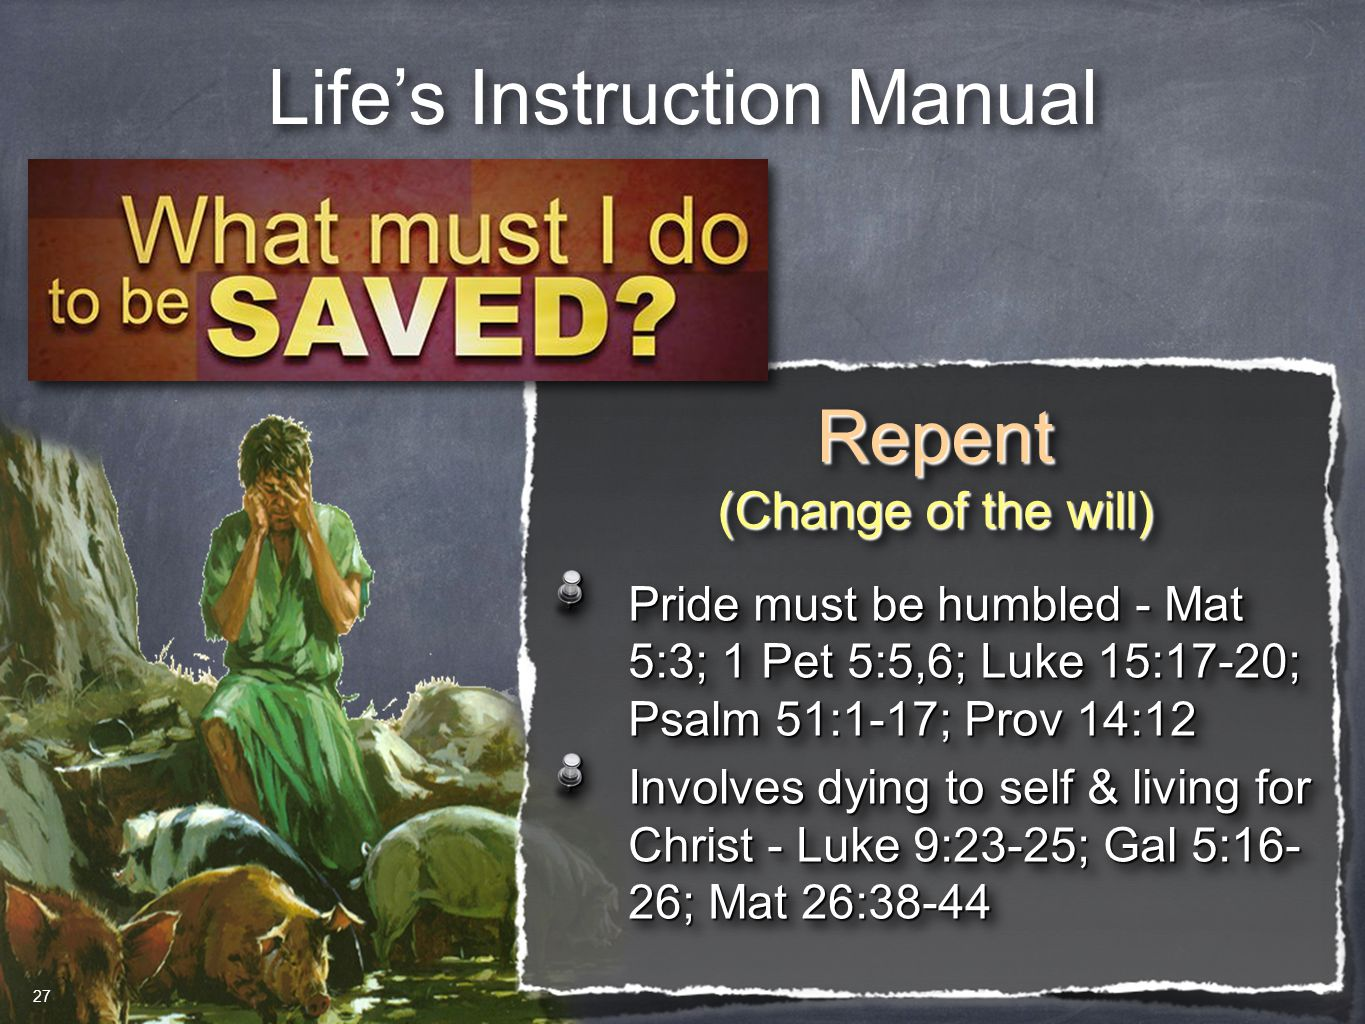 Life's Instruction Manual Repent (Change of the will) Repent Pride must be humbled - Mat 5:3; 1 Pet 5:5,6; Luke 15:17-20; Psalm 51:1-17; Prov 14:12 In